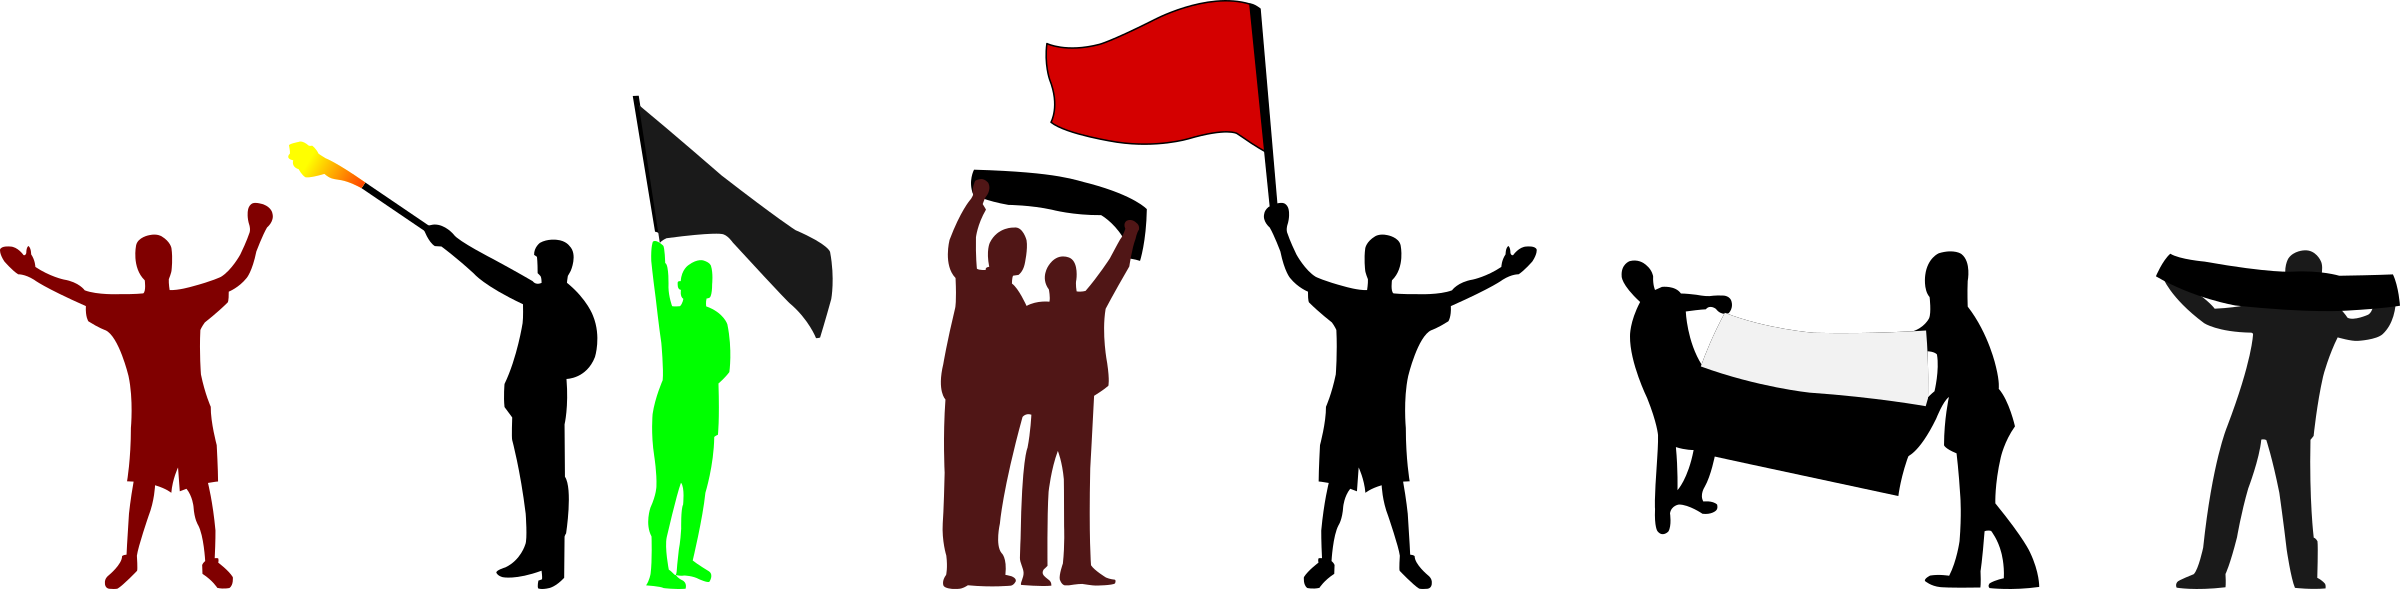 Ultras PNG - 80846